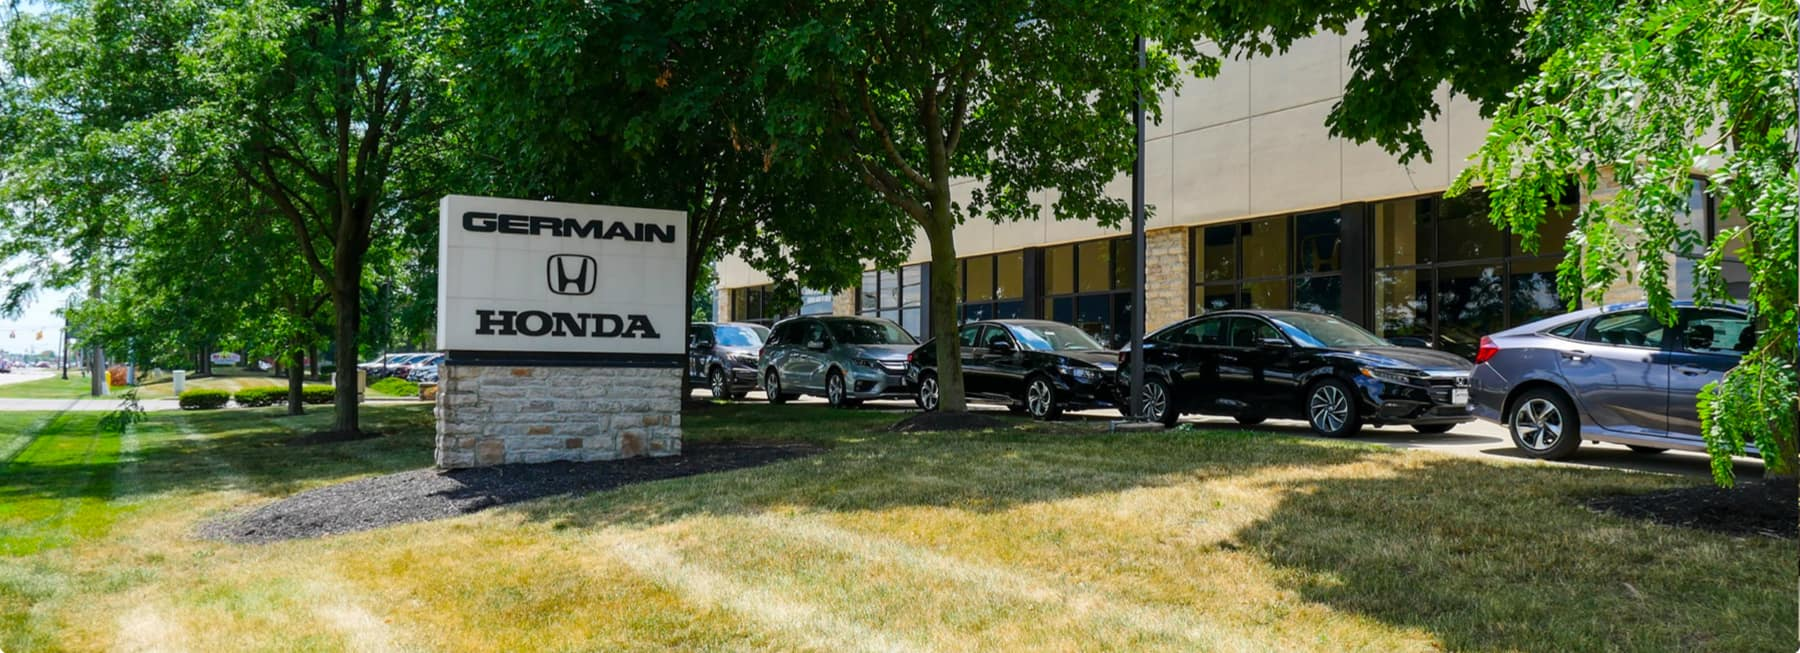 Germain Honda of Dublin dealership exterior